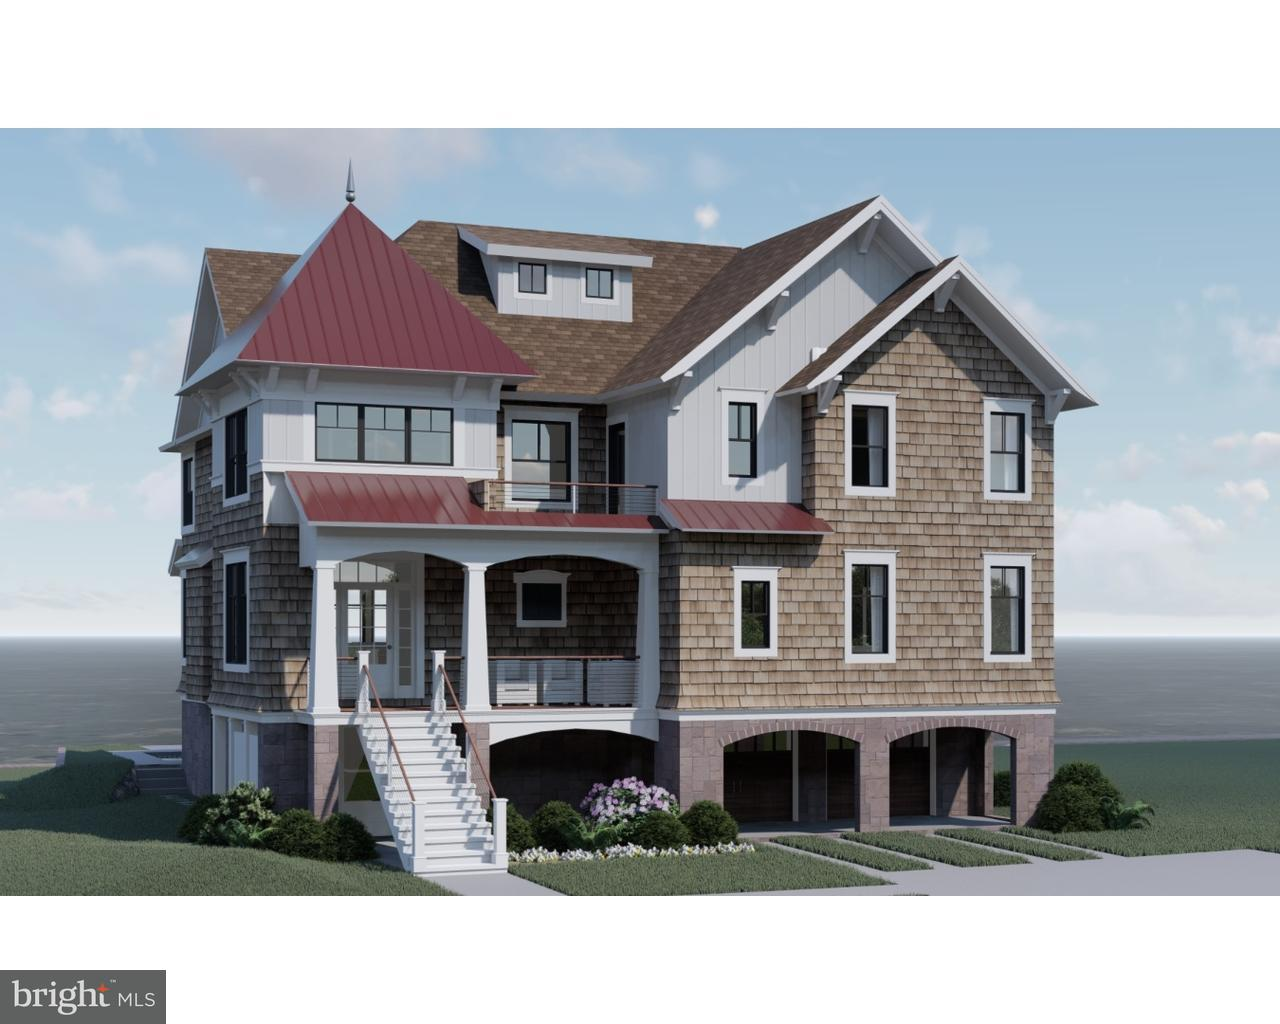 Single Family Home for Sale at 39 LAGOON Road Ocean City, New Jersey 08226 United States